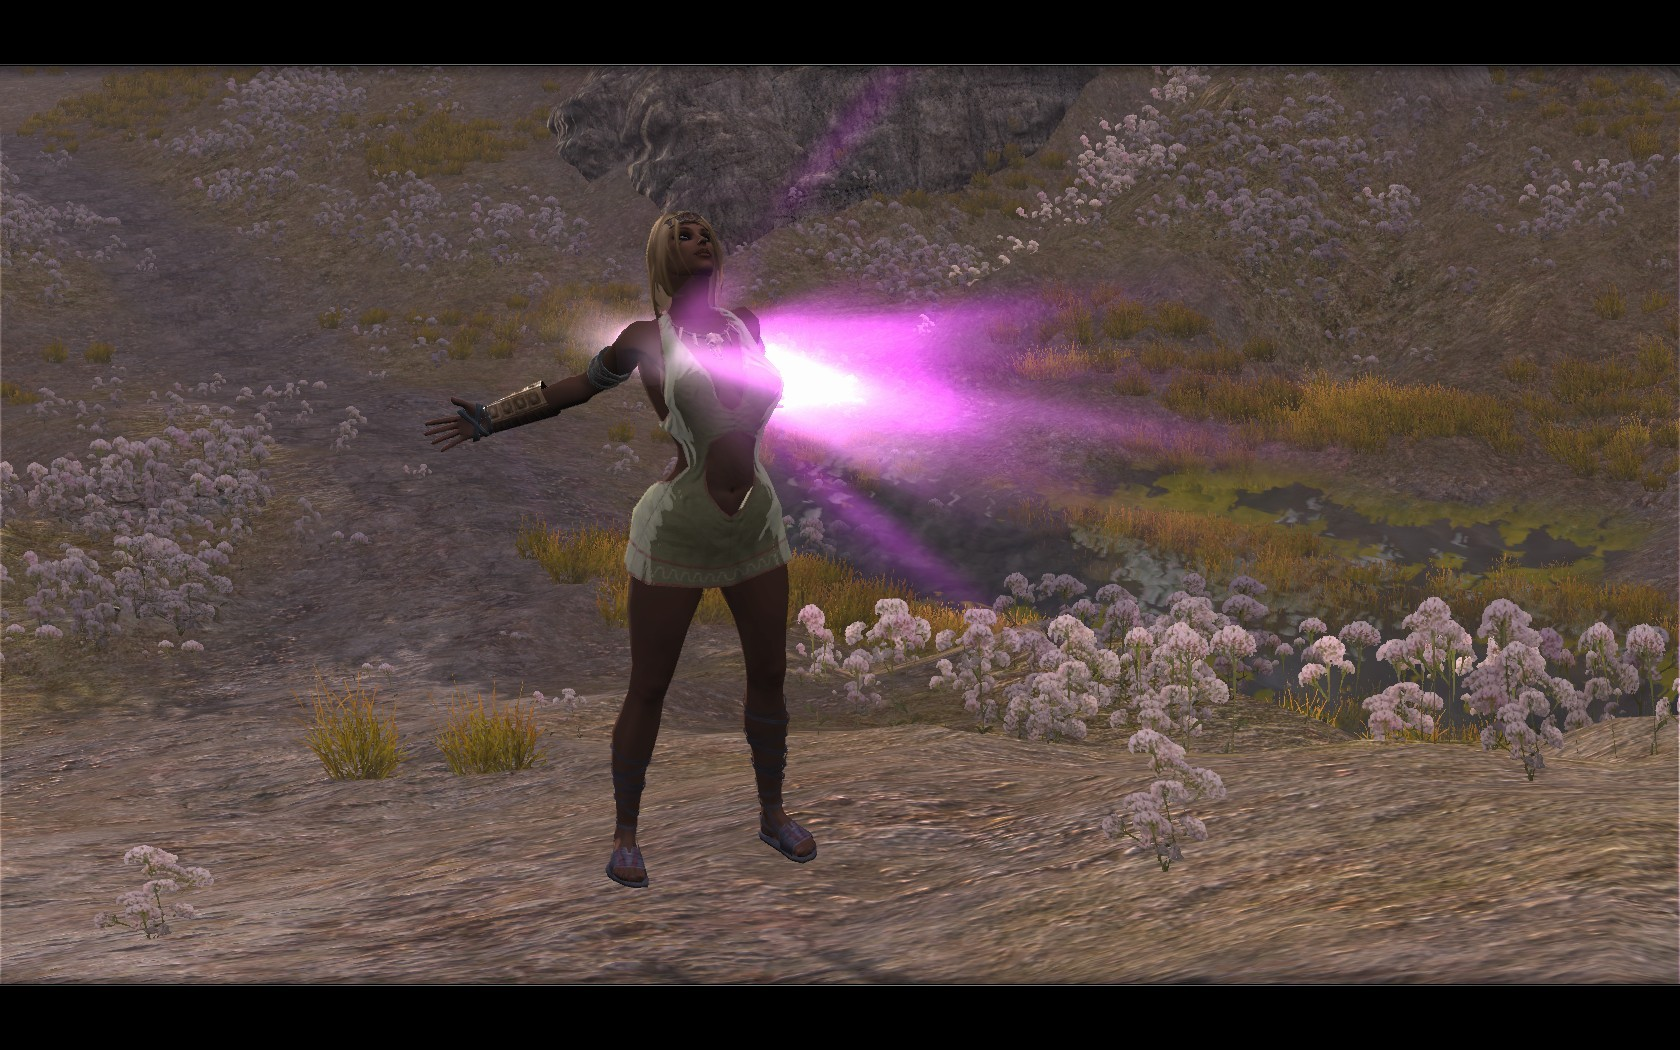 3D Magic Boobs magic boobs! - mmorpg age of conan: unchained galleries